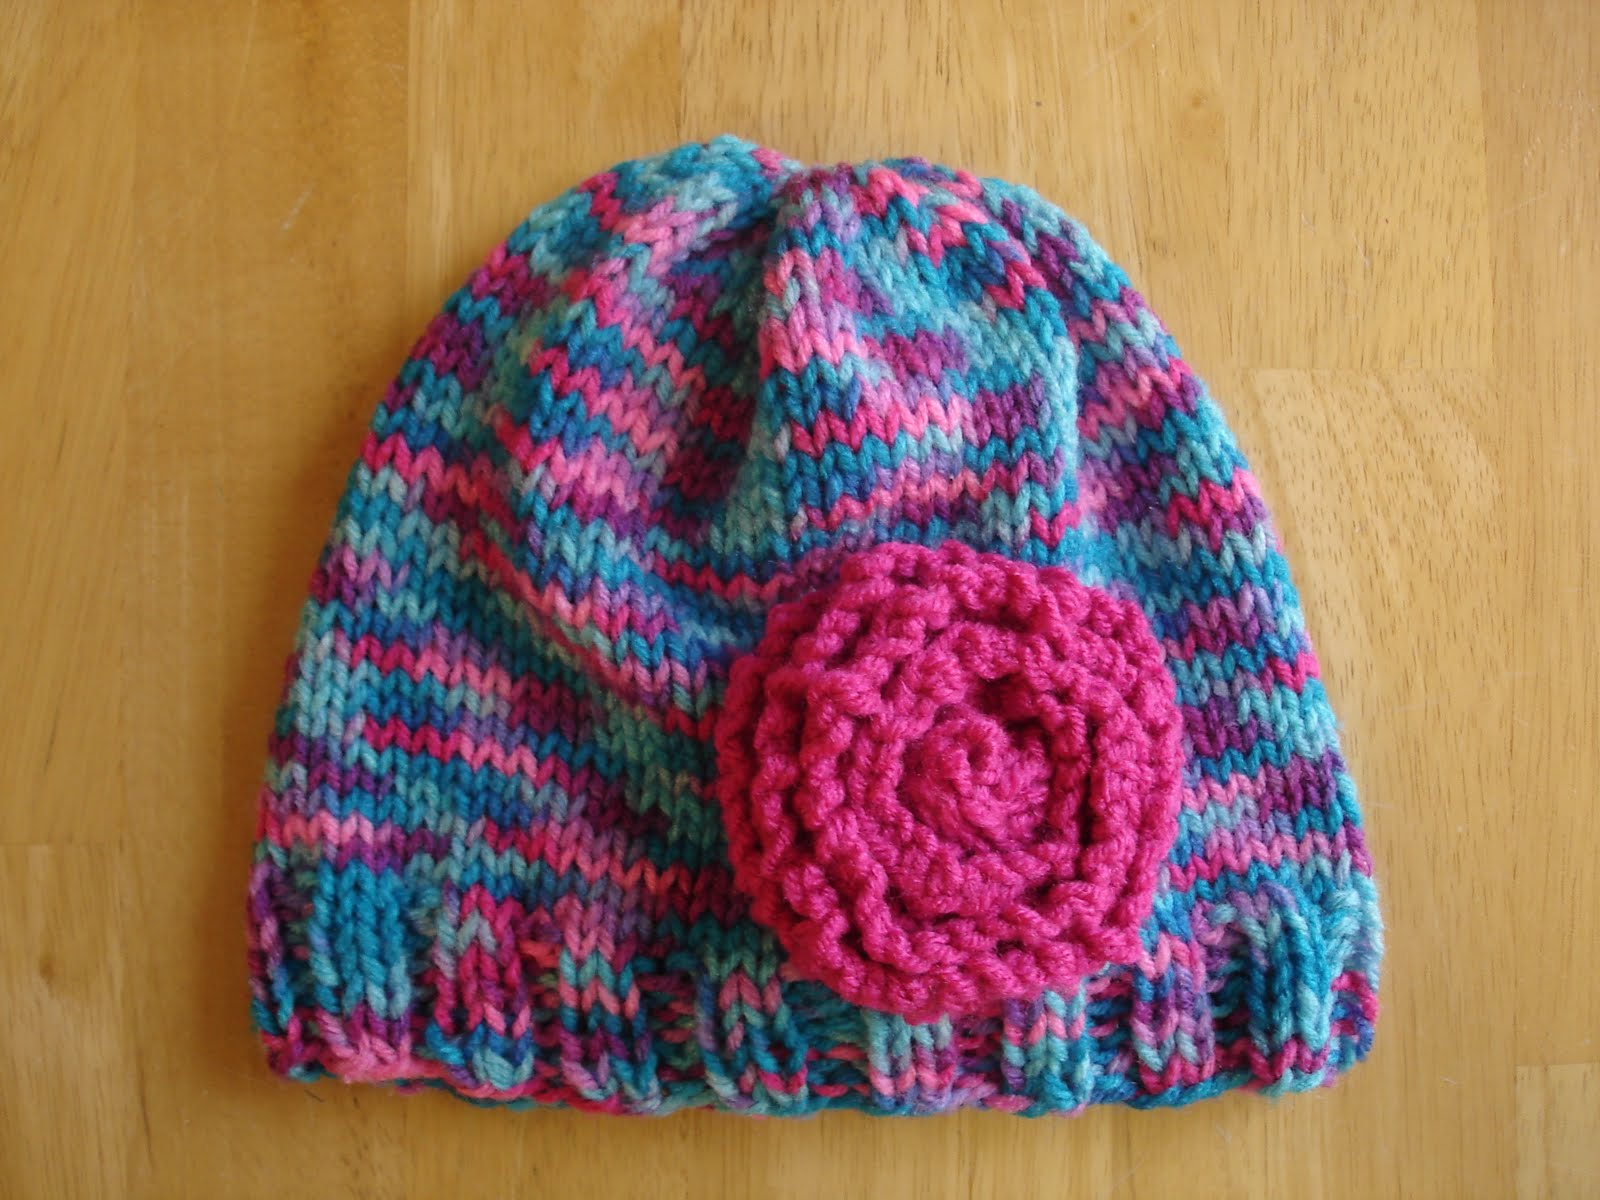 Knitting Patterns For Hats : Fiber Flux: Free Knitting Pattern...Very Violet Newborn Hat!